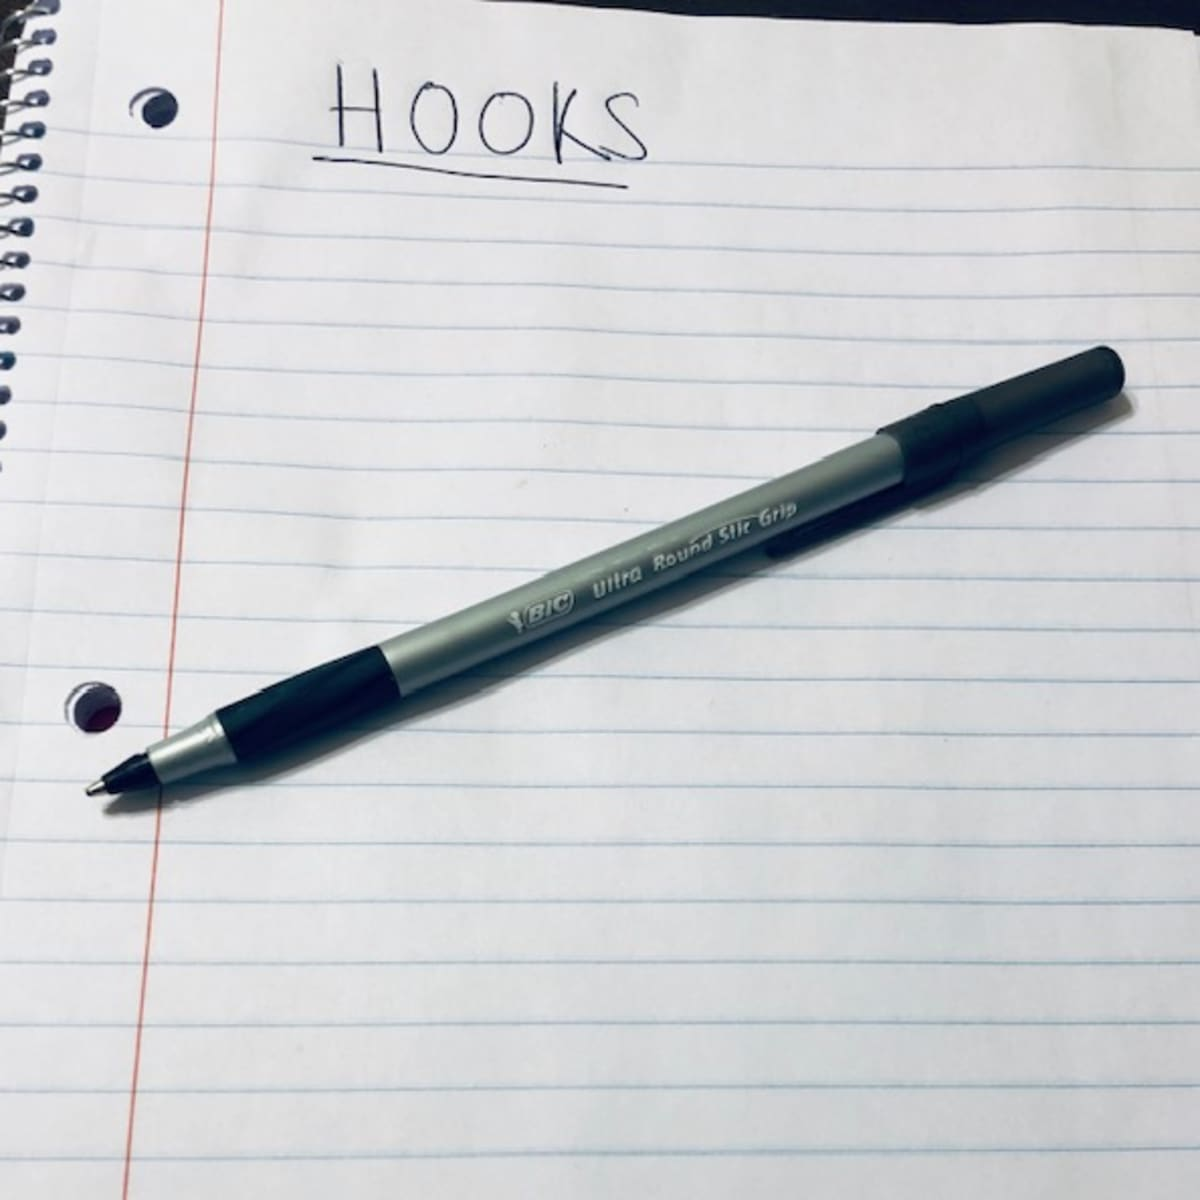 For essays types of hooks suspended.accessdomain.com